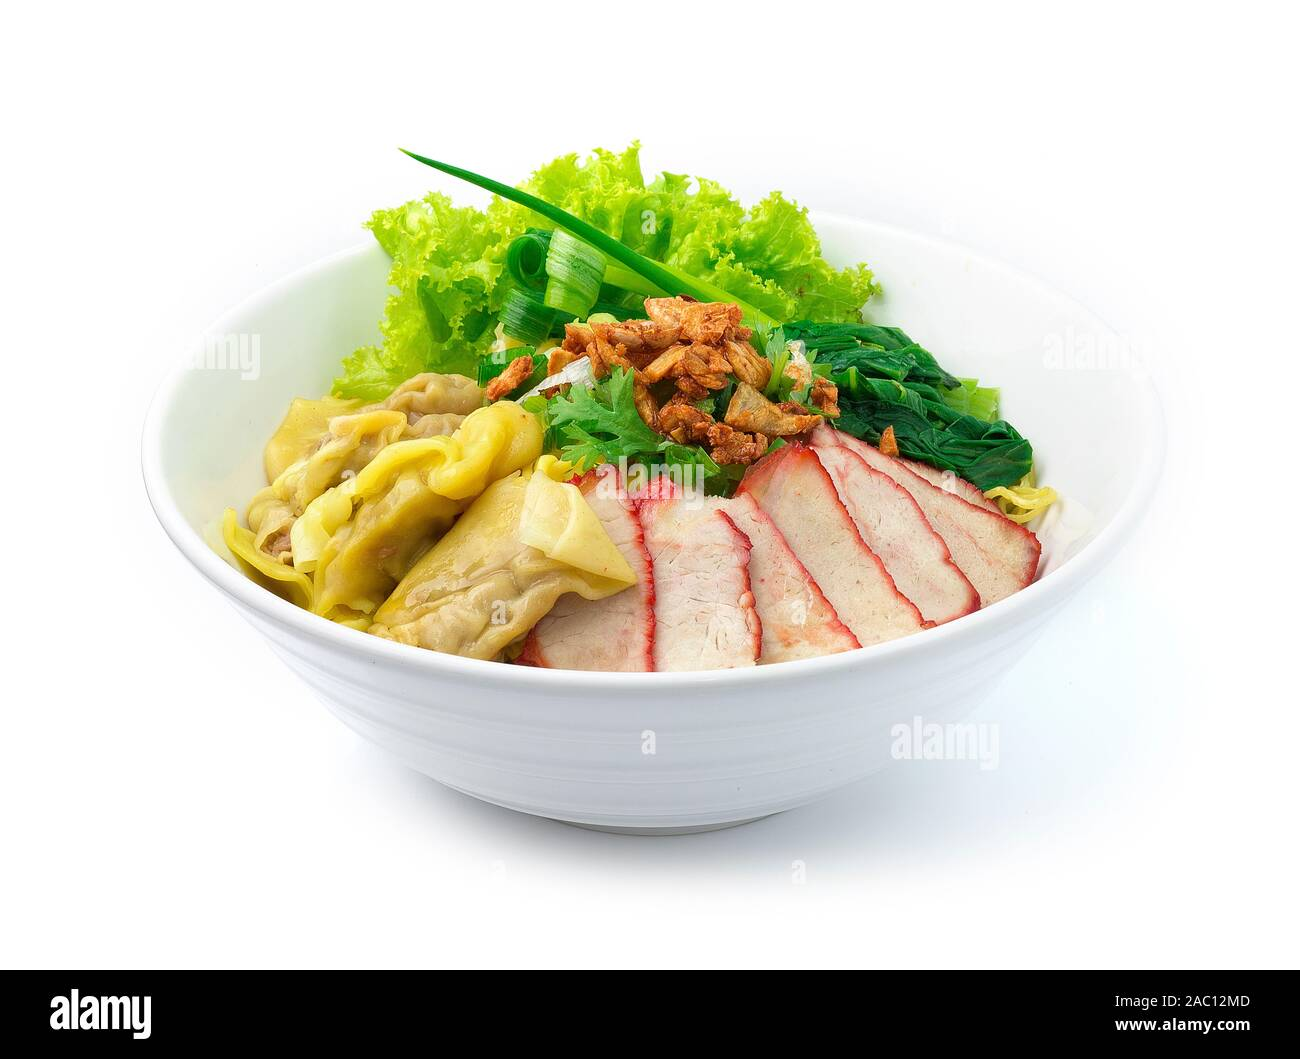 Egg Noodles with Red roast Pork and Wonton Dumplings ontop Crispy Garlic and Spring Onions in Bowl. Asian Food fusion style side view Stock Photo